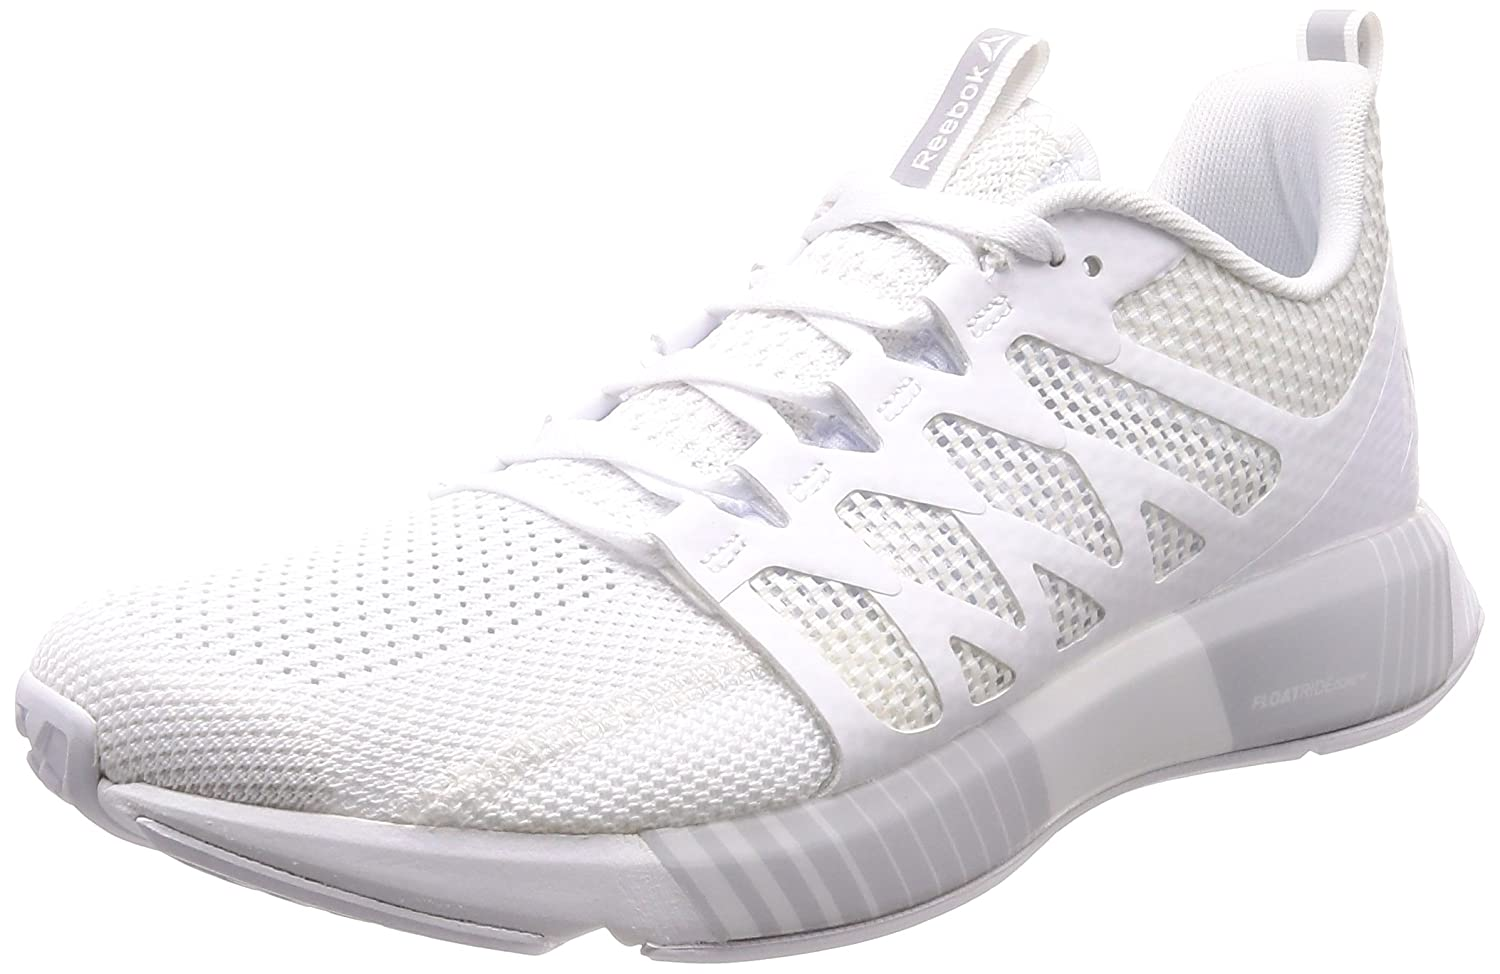 d8a6991cc98 Reebok Women s Fusion Flexweave Cage Spirit White Running Shoes-7.5  UK India (41 EU)(9 US) (CN4712)  Amazon.in  Shoes   Handbags